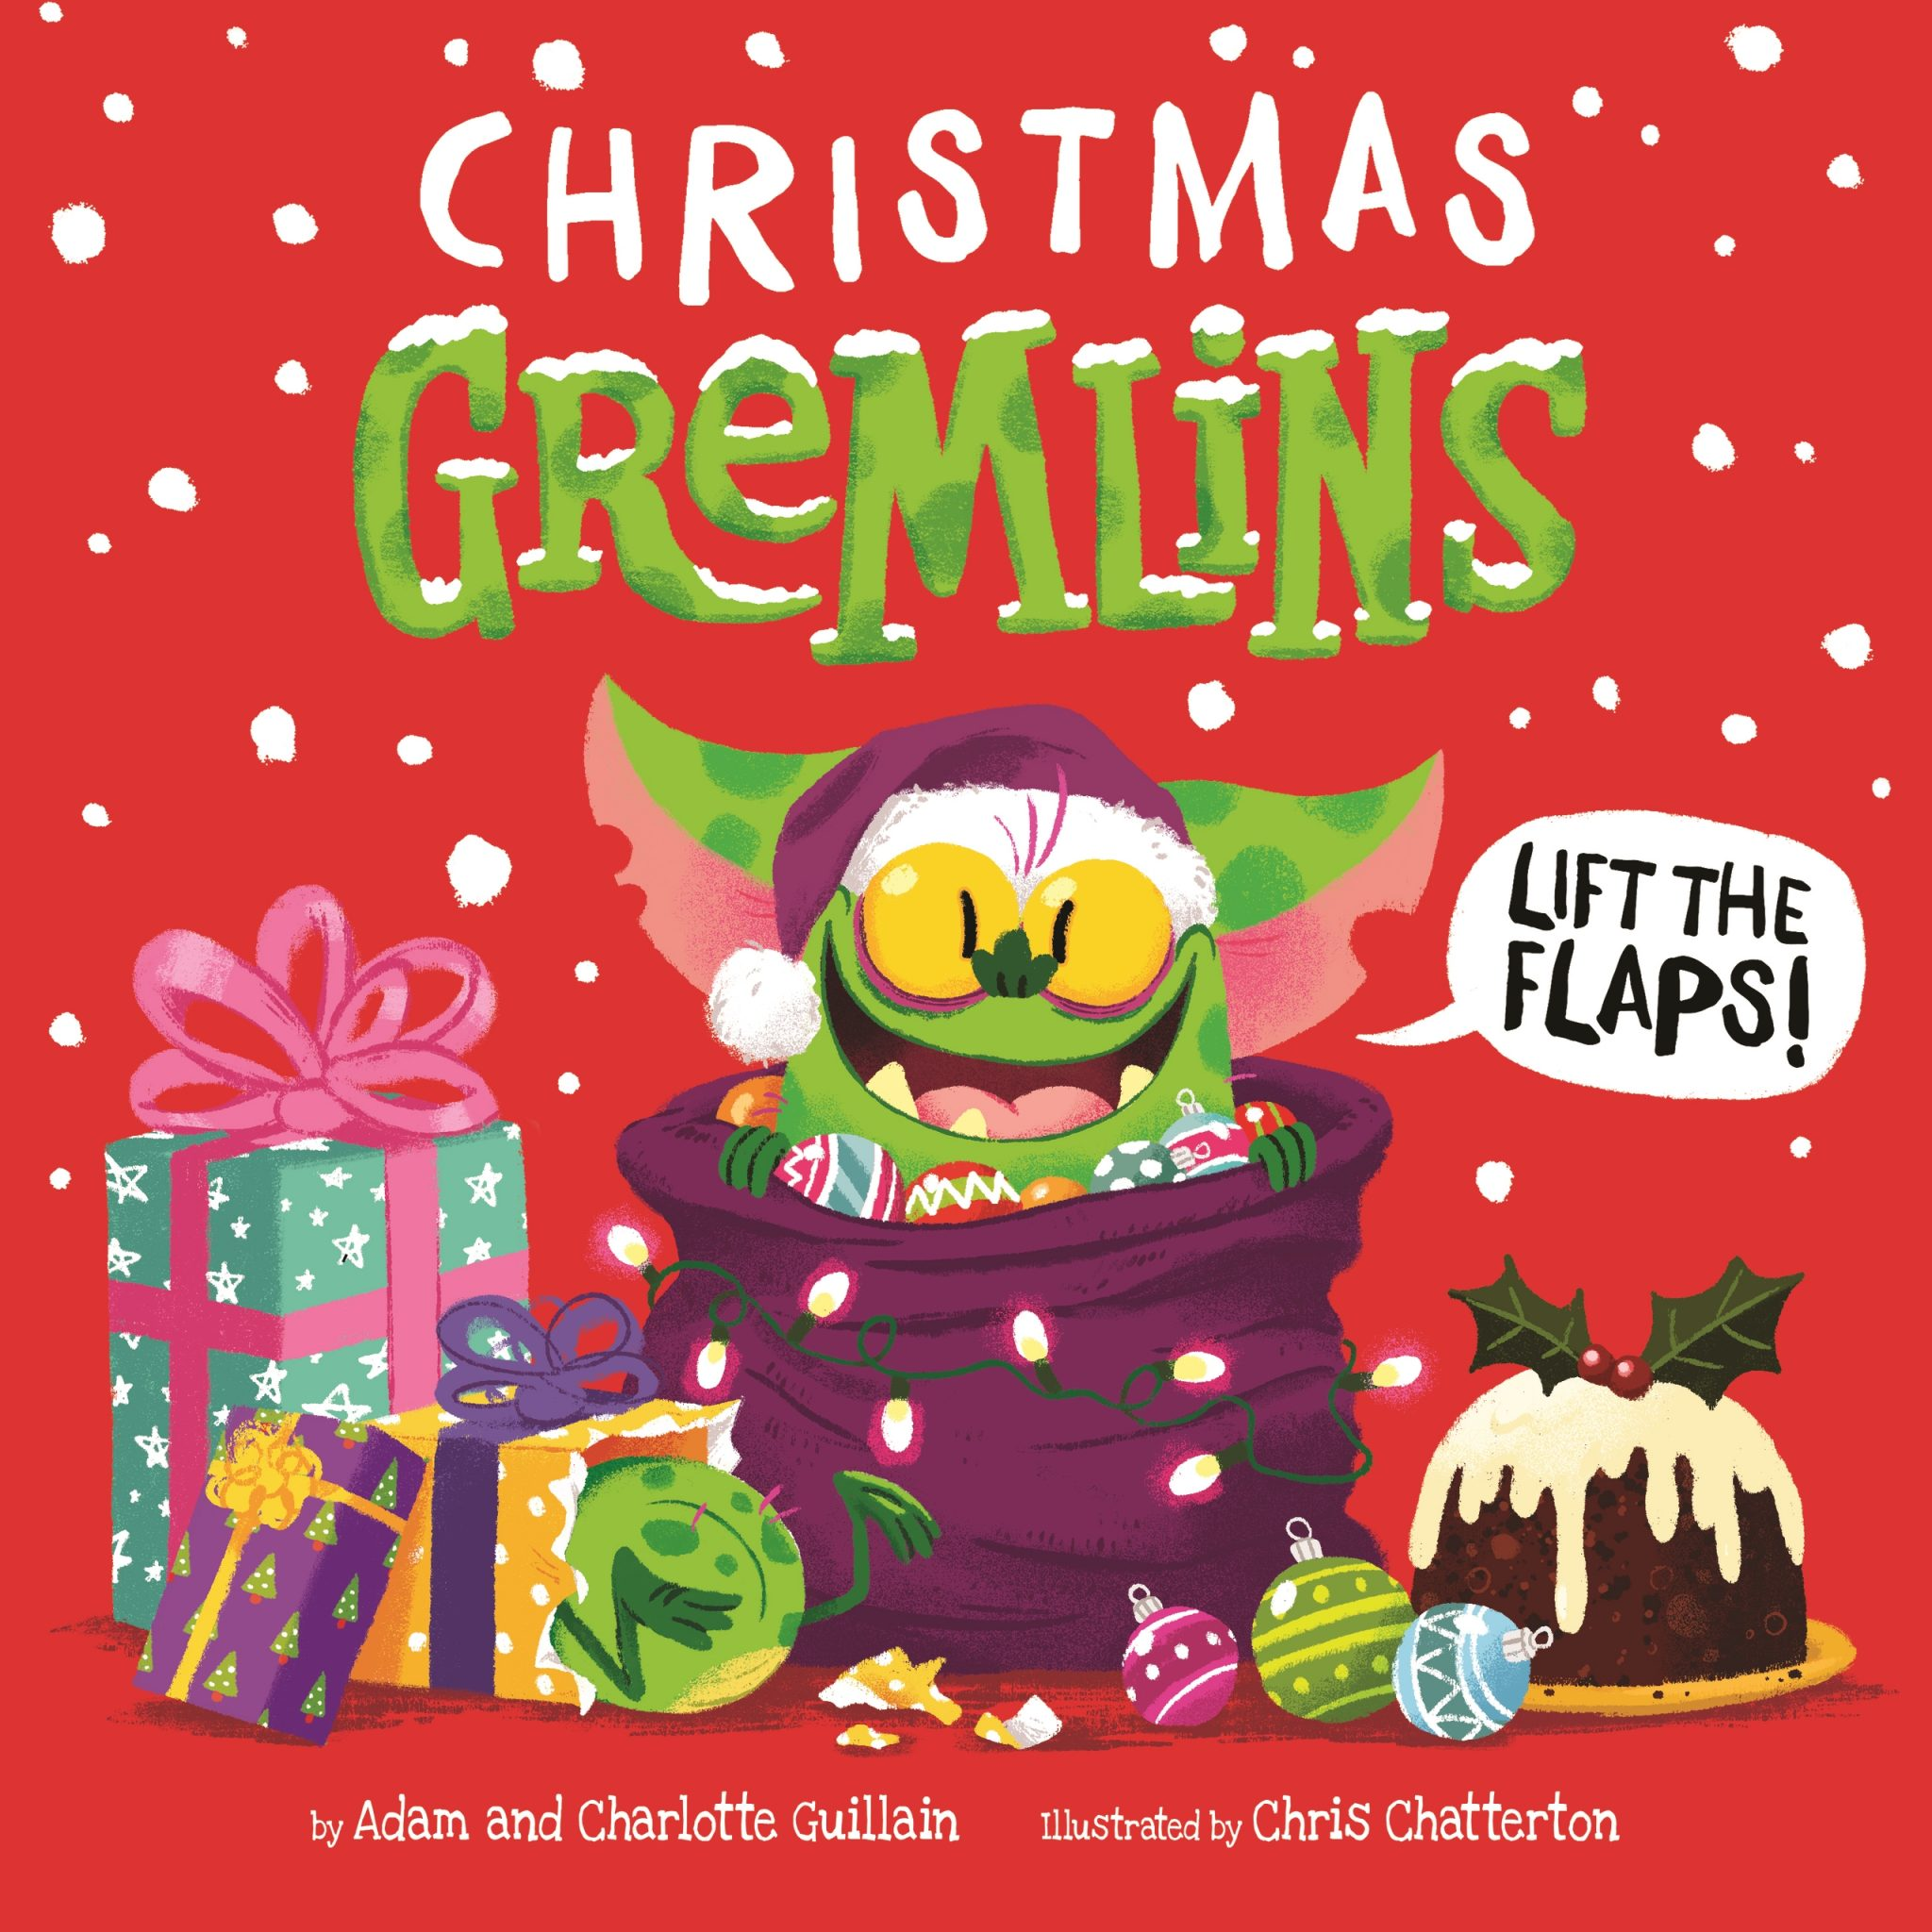 Gremlins Christmas.Christmas Gremlins Adam And Charlotte Guillain